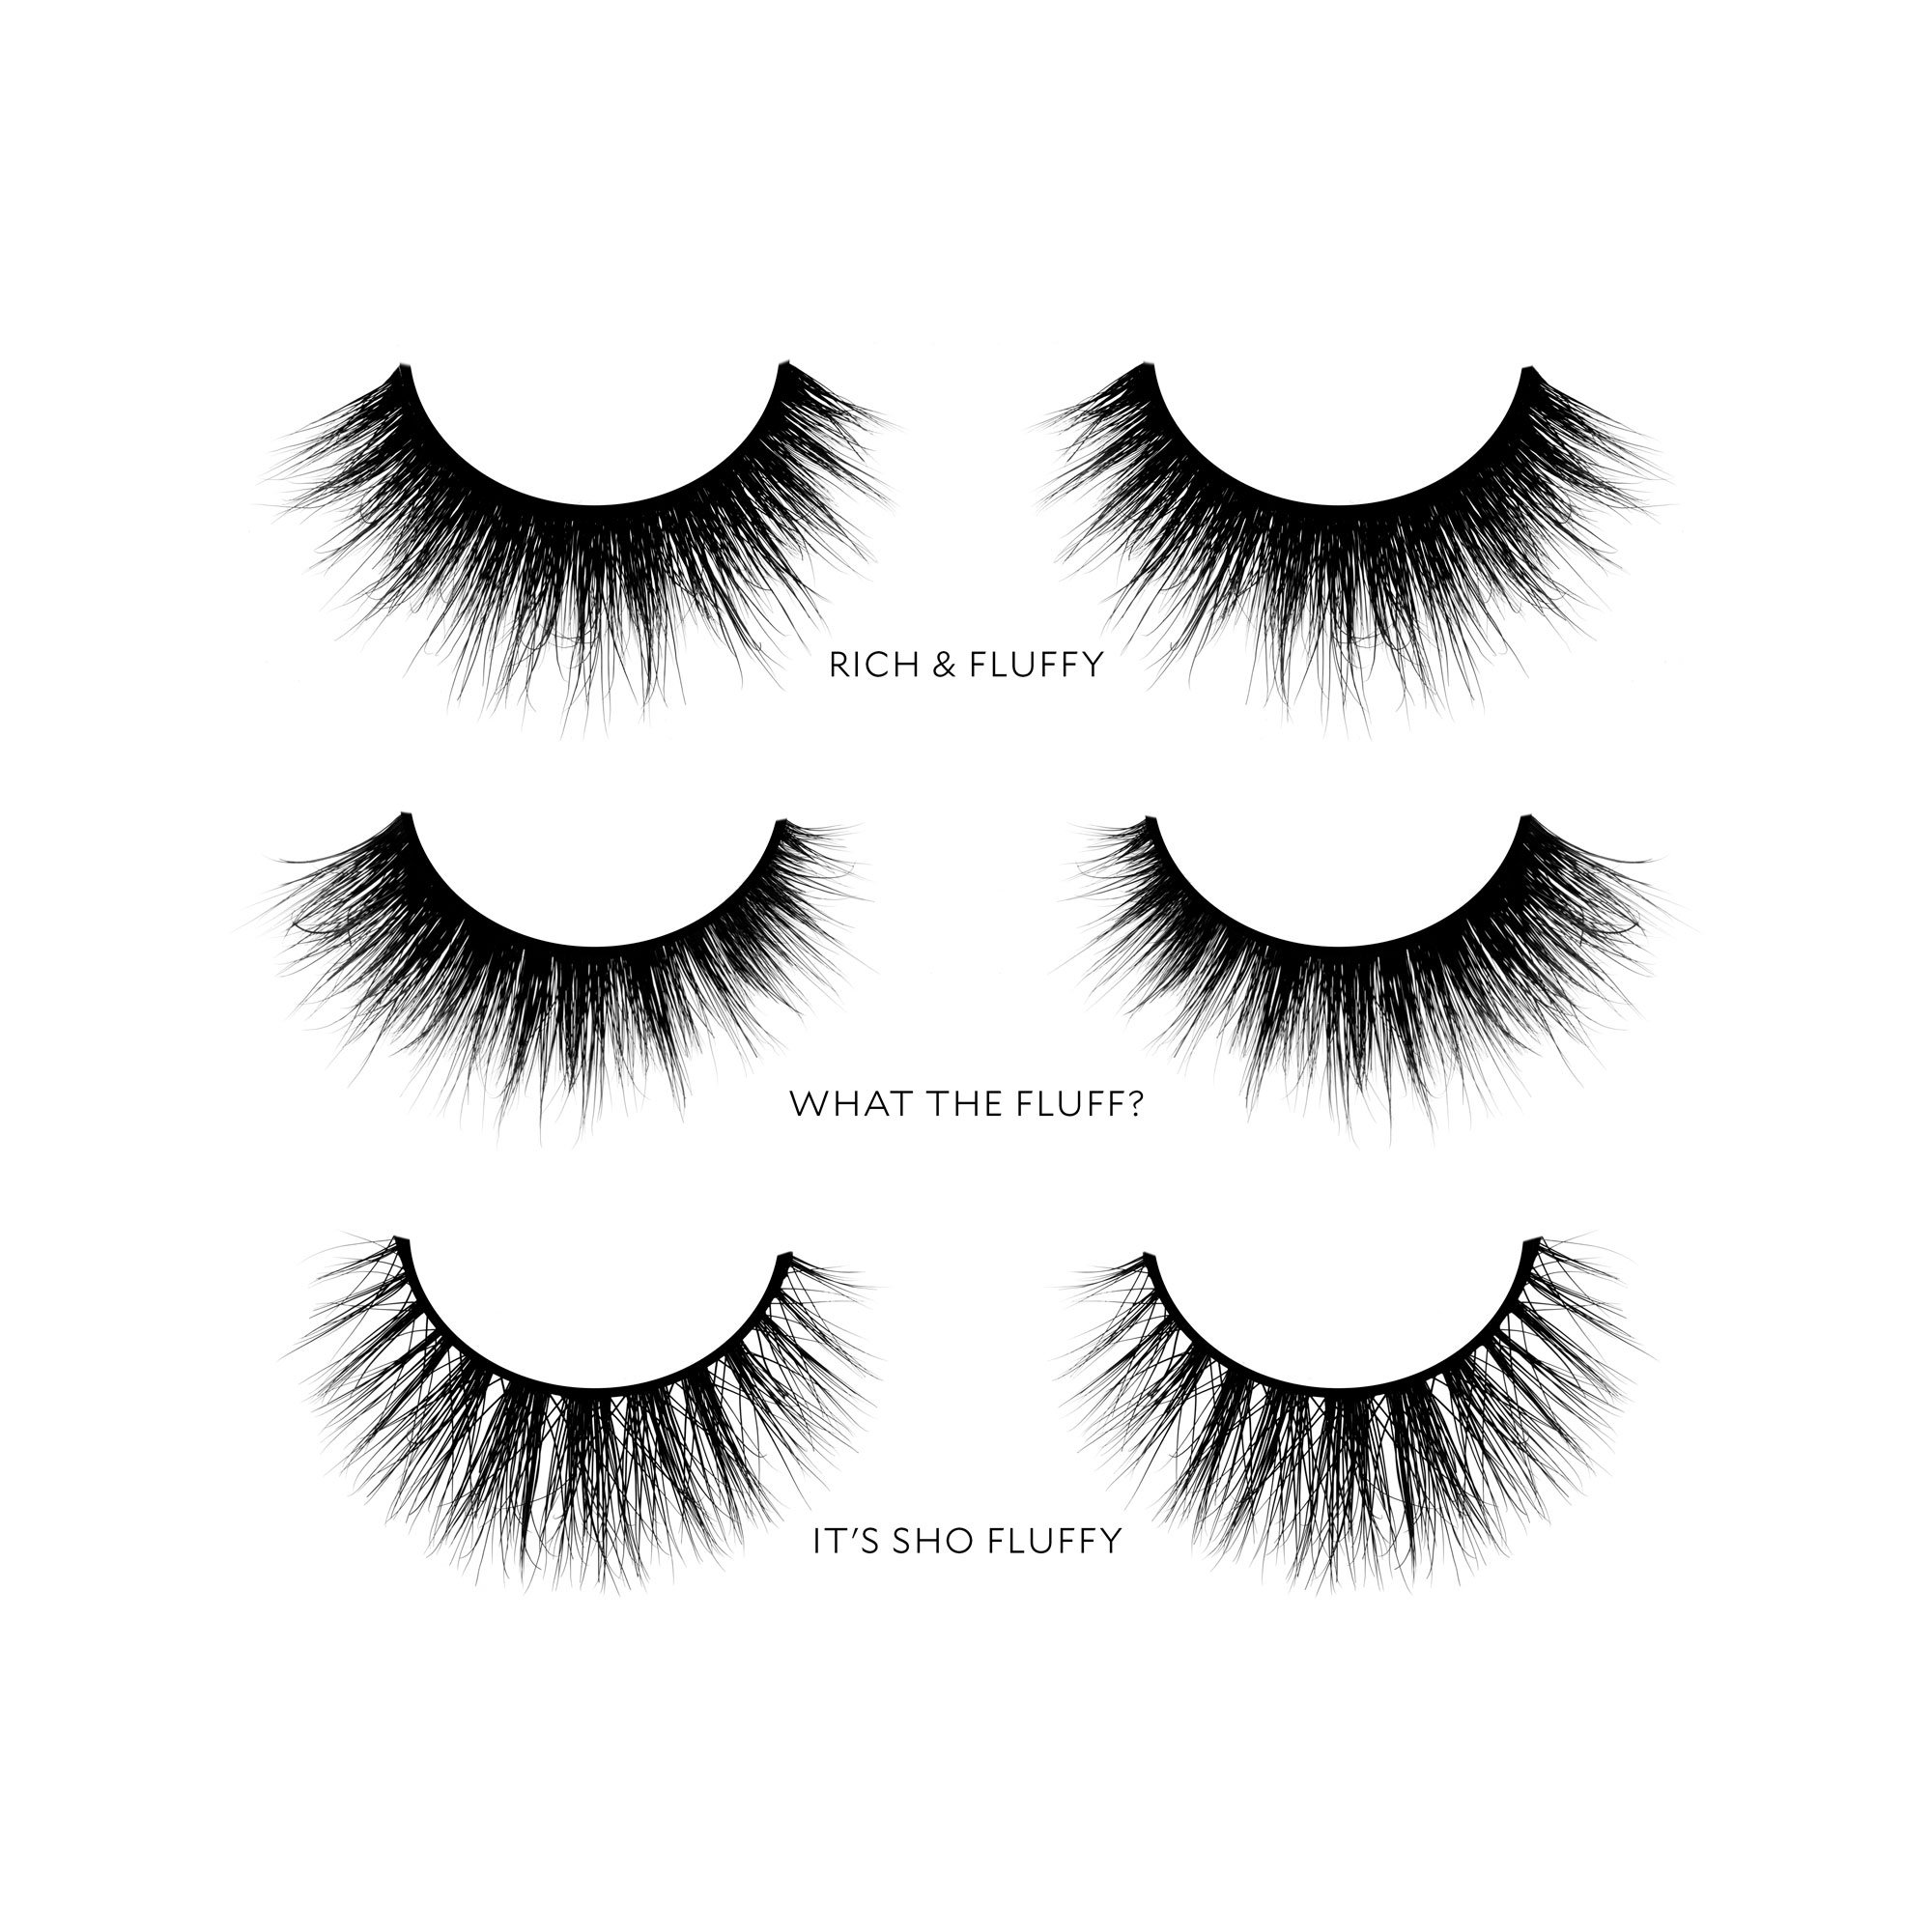 Velour Lashes - 'Thick and Fluffy' Collection (3 Pairs of Mink Lashes) - Fake/False Natural Eyelashes - Long Lasting 25+ Applications - Natural & Lightweight - Ethically Sourced - Easy Application by Velour Lashes